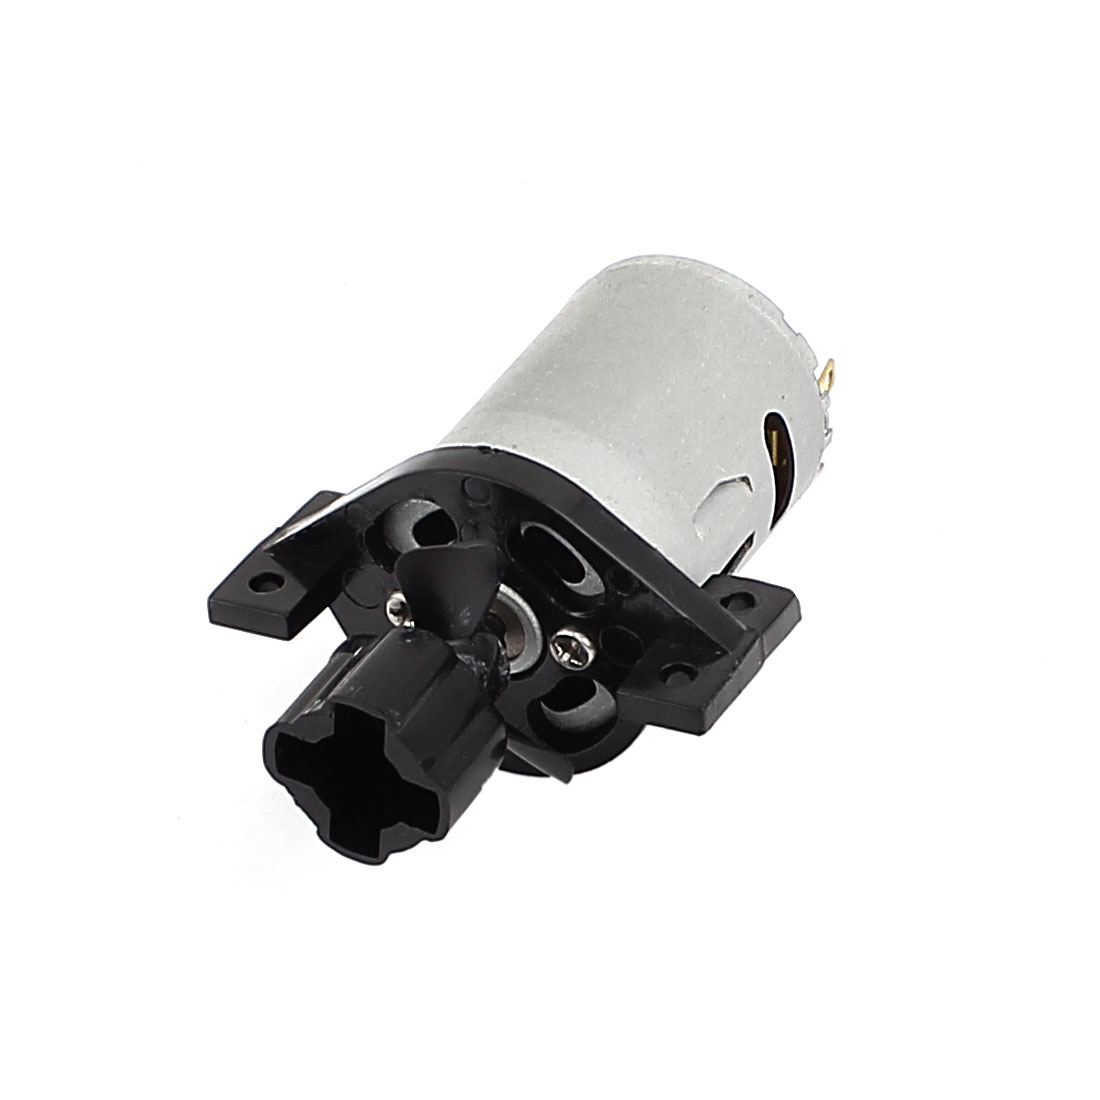 DC 7.4V 48000RPM 2.3mm Shaft Electric Mini Motor for Double Horse 7000 7002 7004 7008 RC Plane